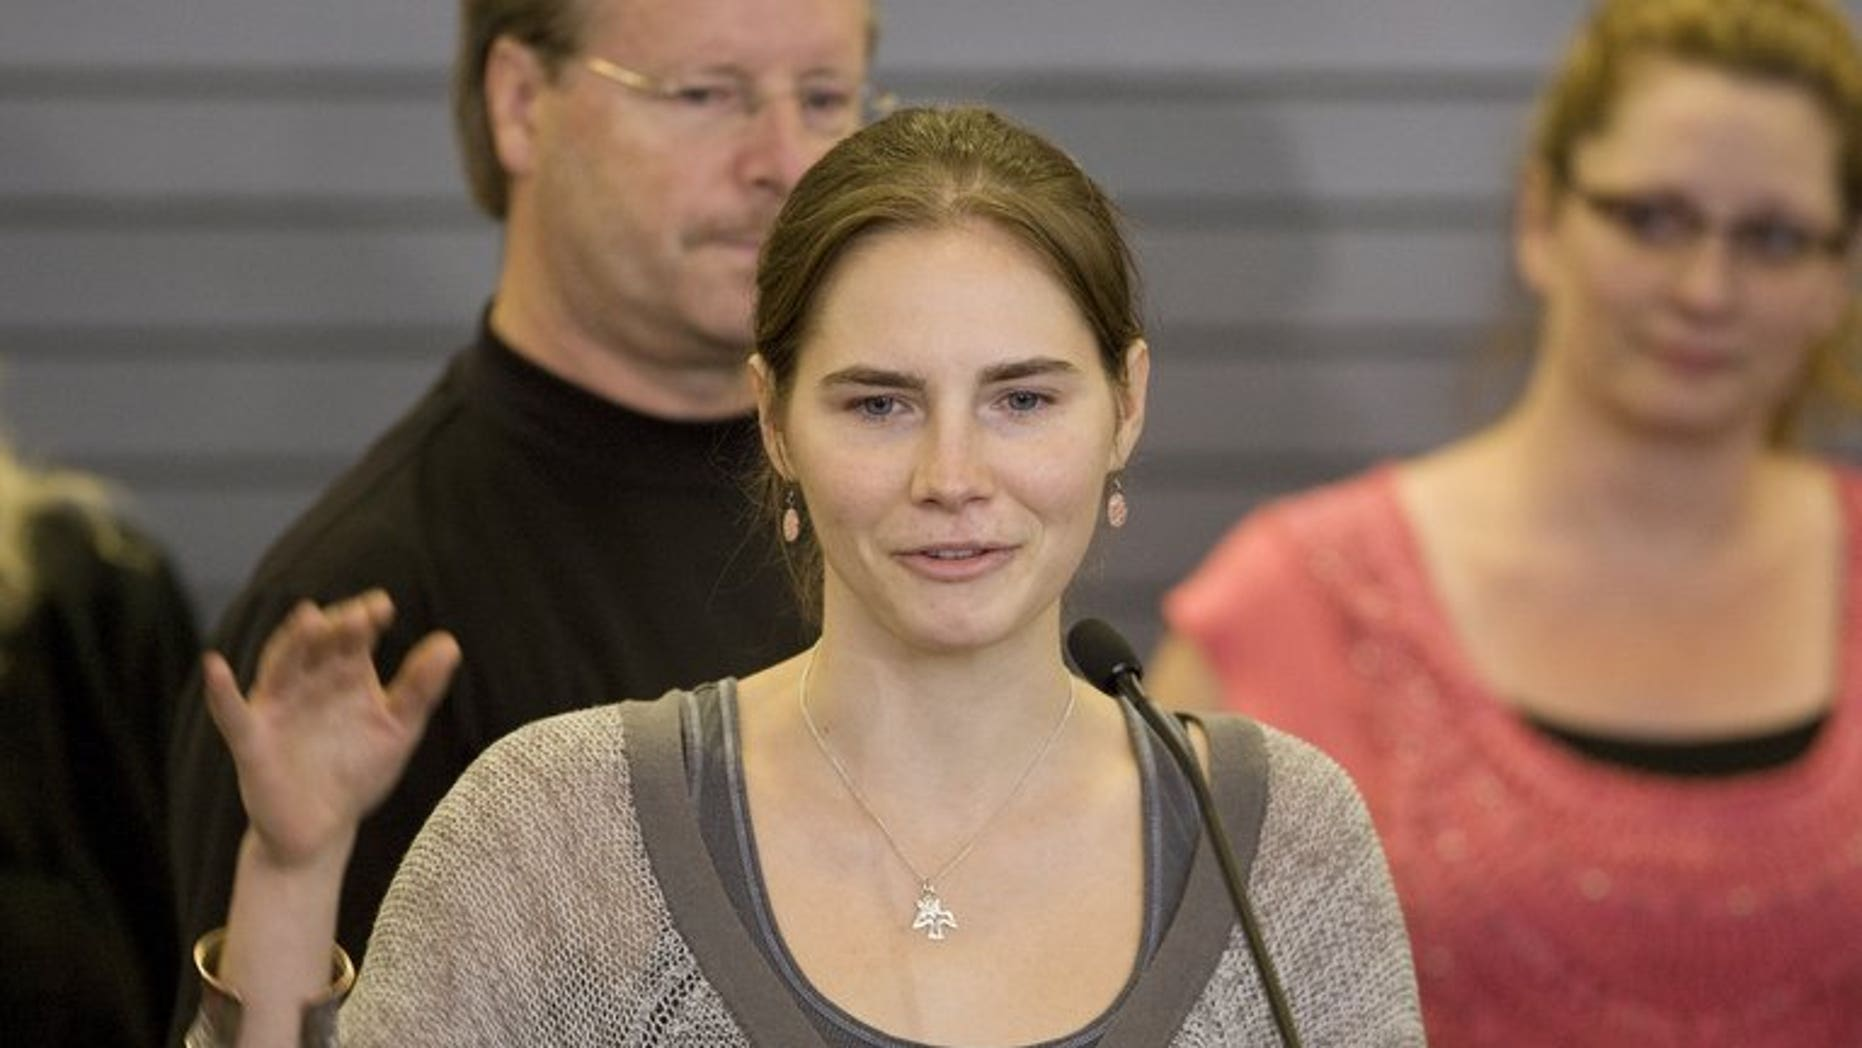 Amanda Knox makes her first appearance after arriving in Seattle following her release from prison in Italy on October 4, 2011. A ruling acquitting US student Knox over the brutal murder of her British housemate in 2007 had numerous contradictory and incoherent elements, Italy's highest appeals court said Tuesday, explaining its decision to order a retrial.